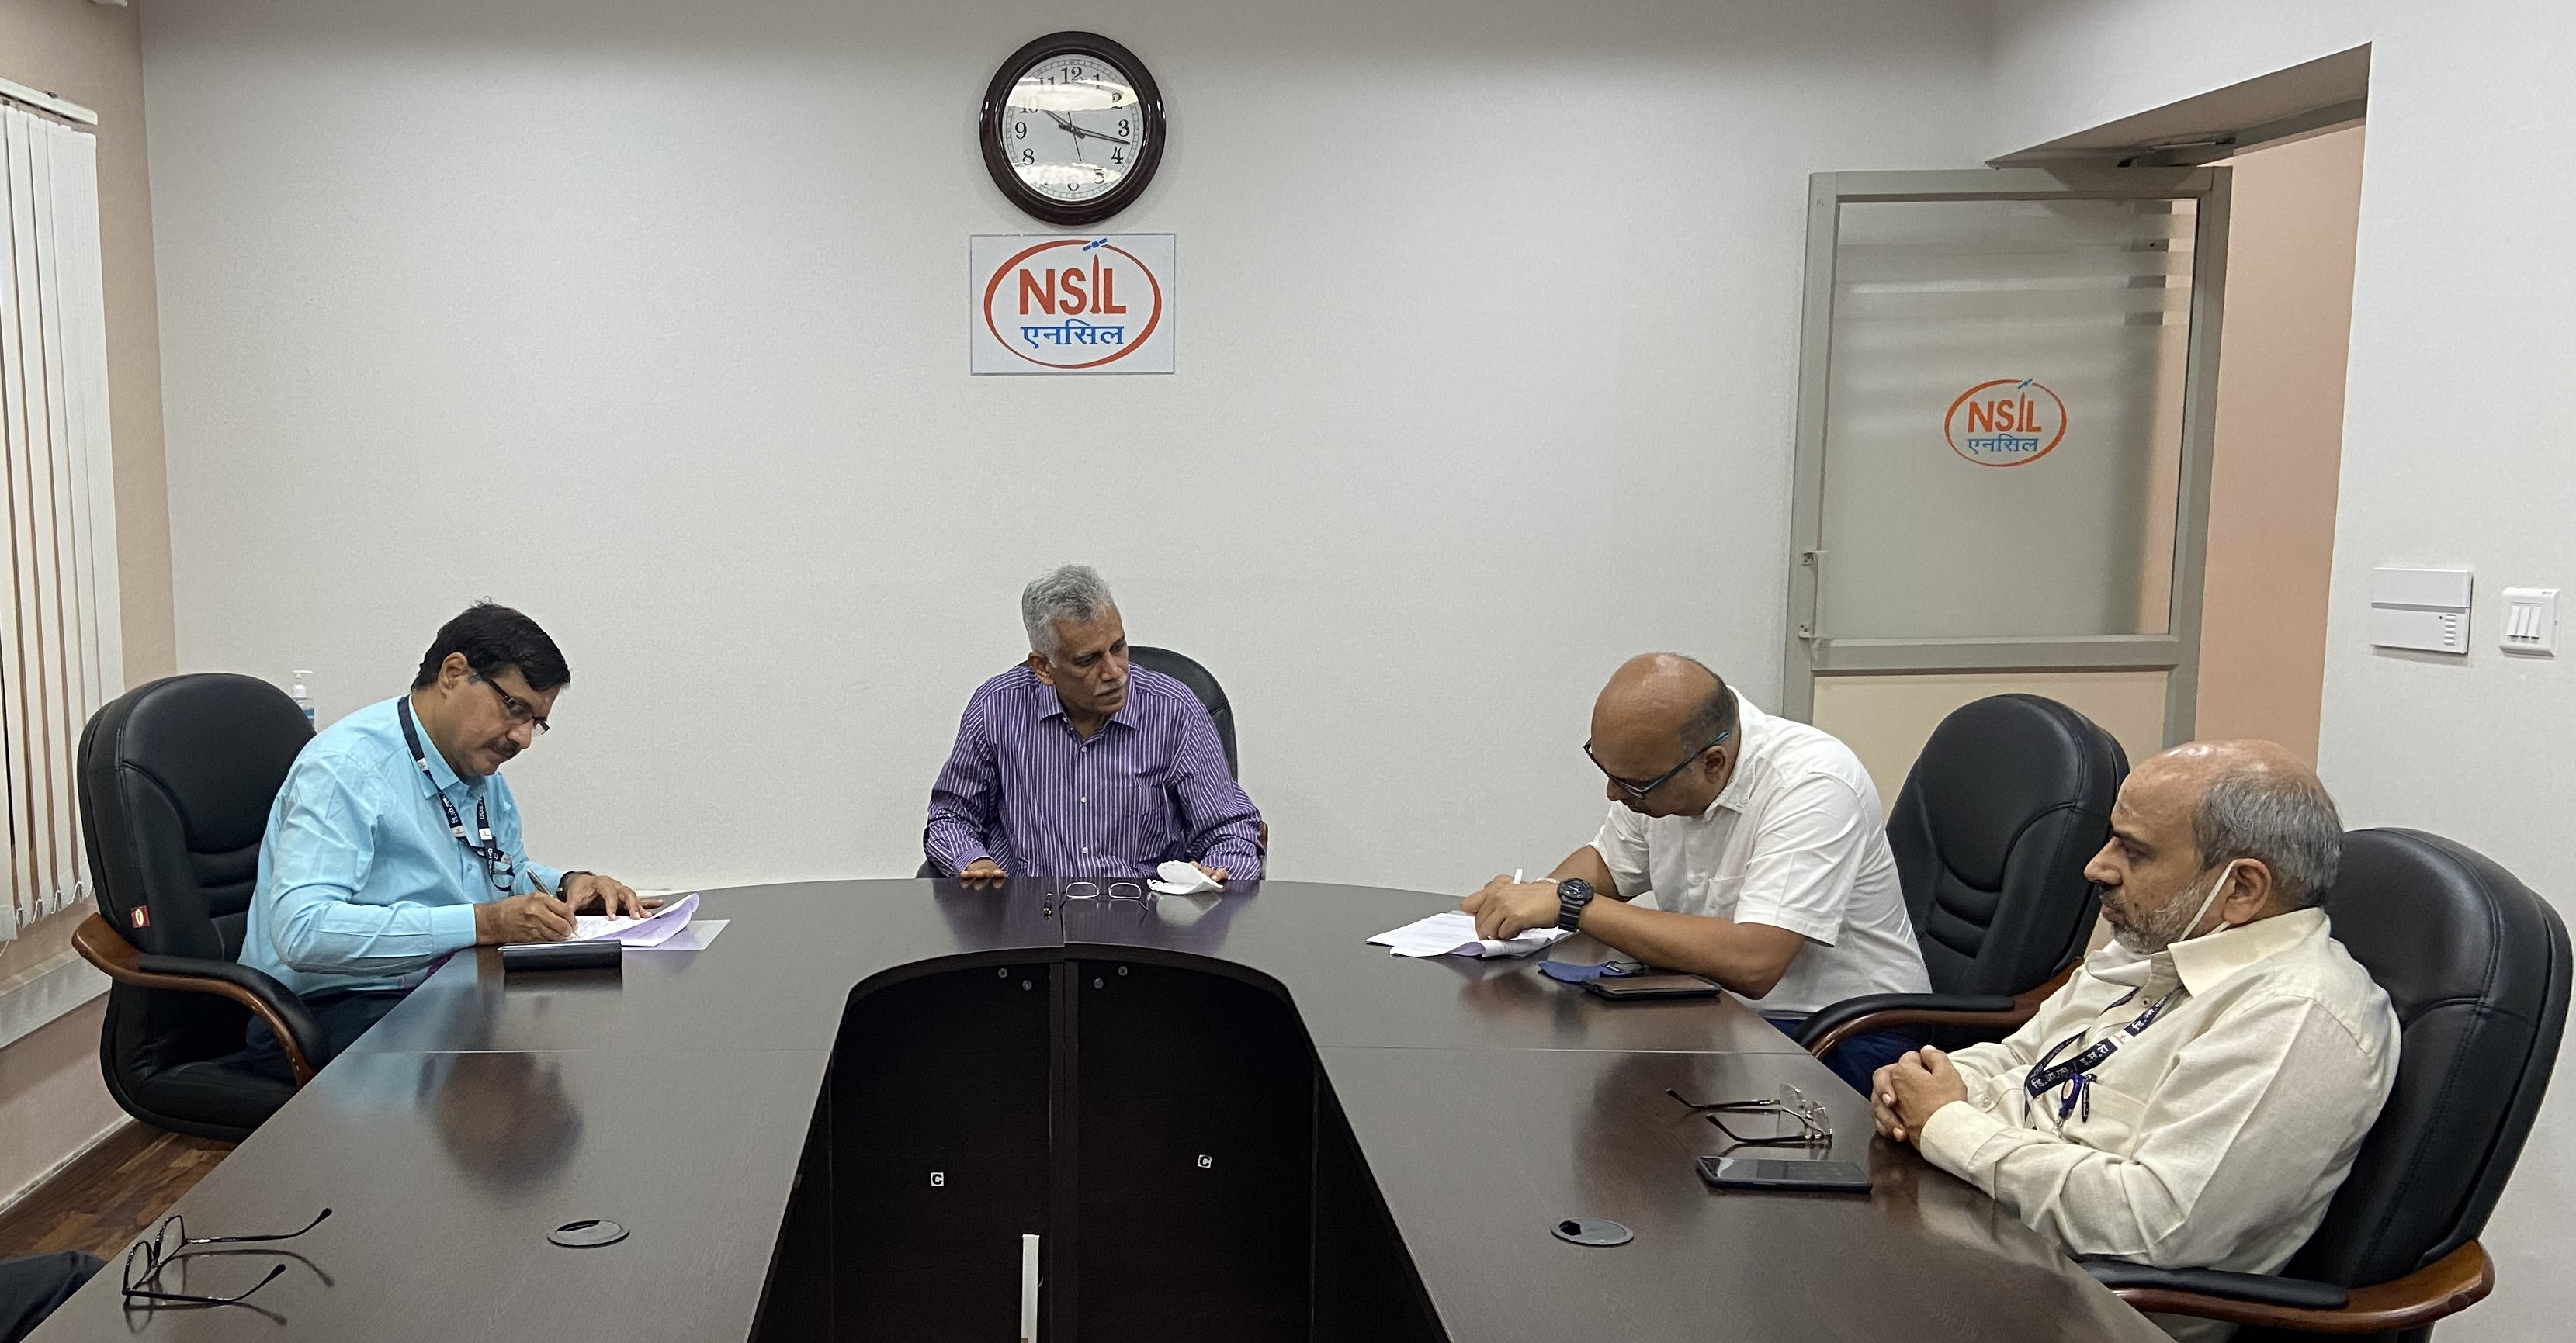 A Memorandum of Understanding (MoU) was signed between Department Of Space (DOS) and NewSpace India Limited (NSIL) on October 12, 2020. This MoU will enable NSIL to transfer technologies to the industry.